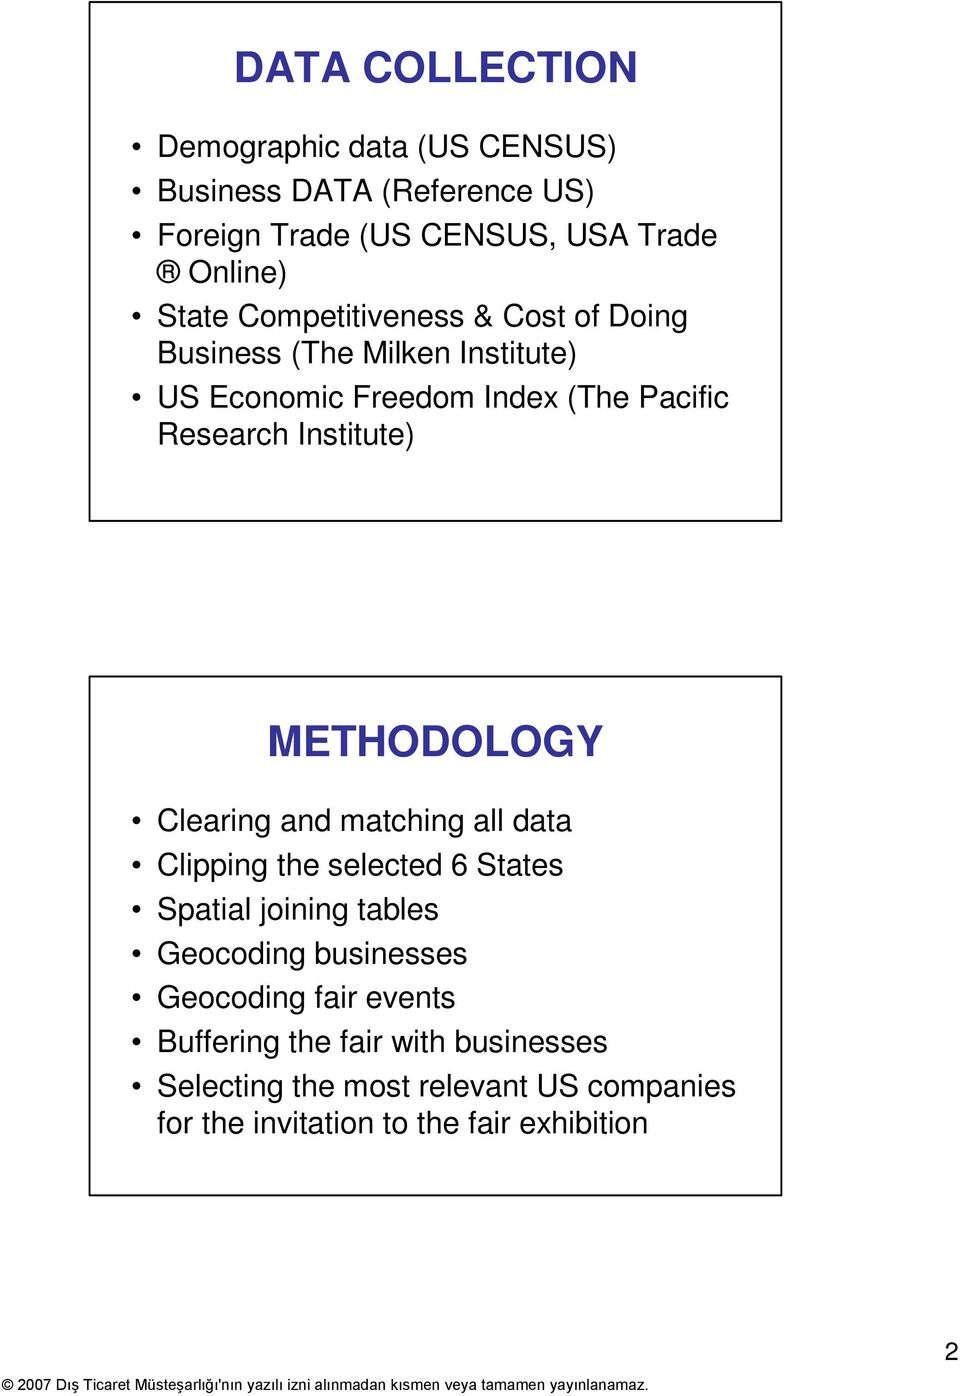 METHODOLOGY Clearing and matching all data Clipping the selected 6 States Spatial joining tables Geocoding businesses